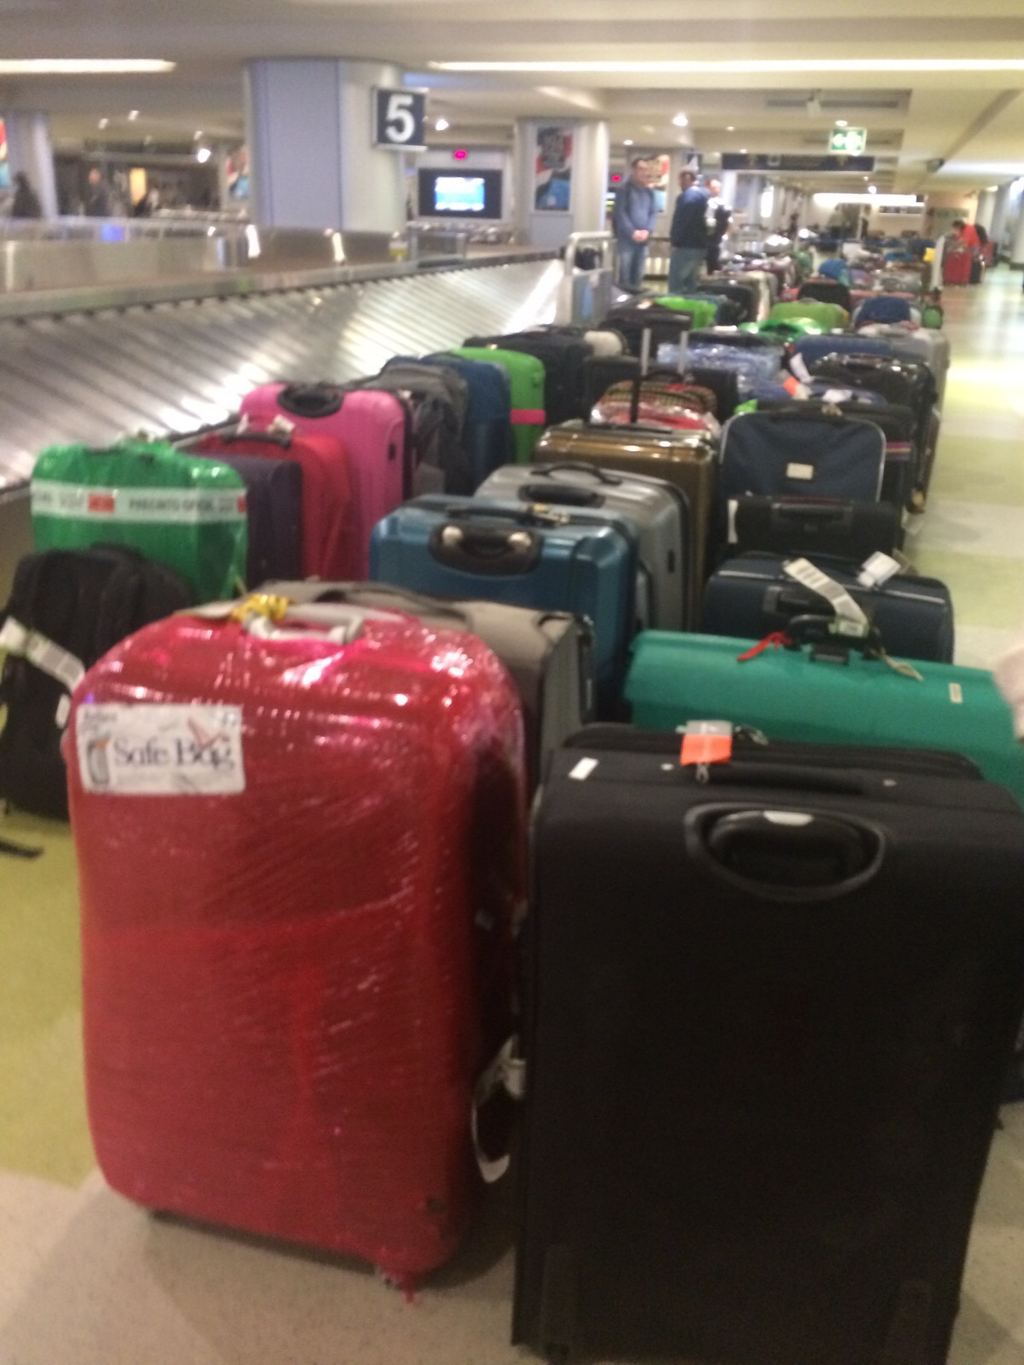 Typically passengers arriving have to wait for their luggage. The situation on Friday was reversed.